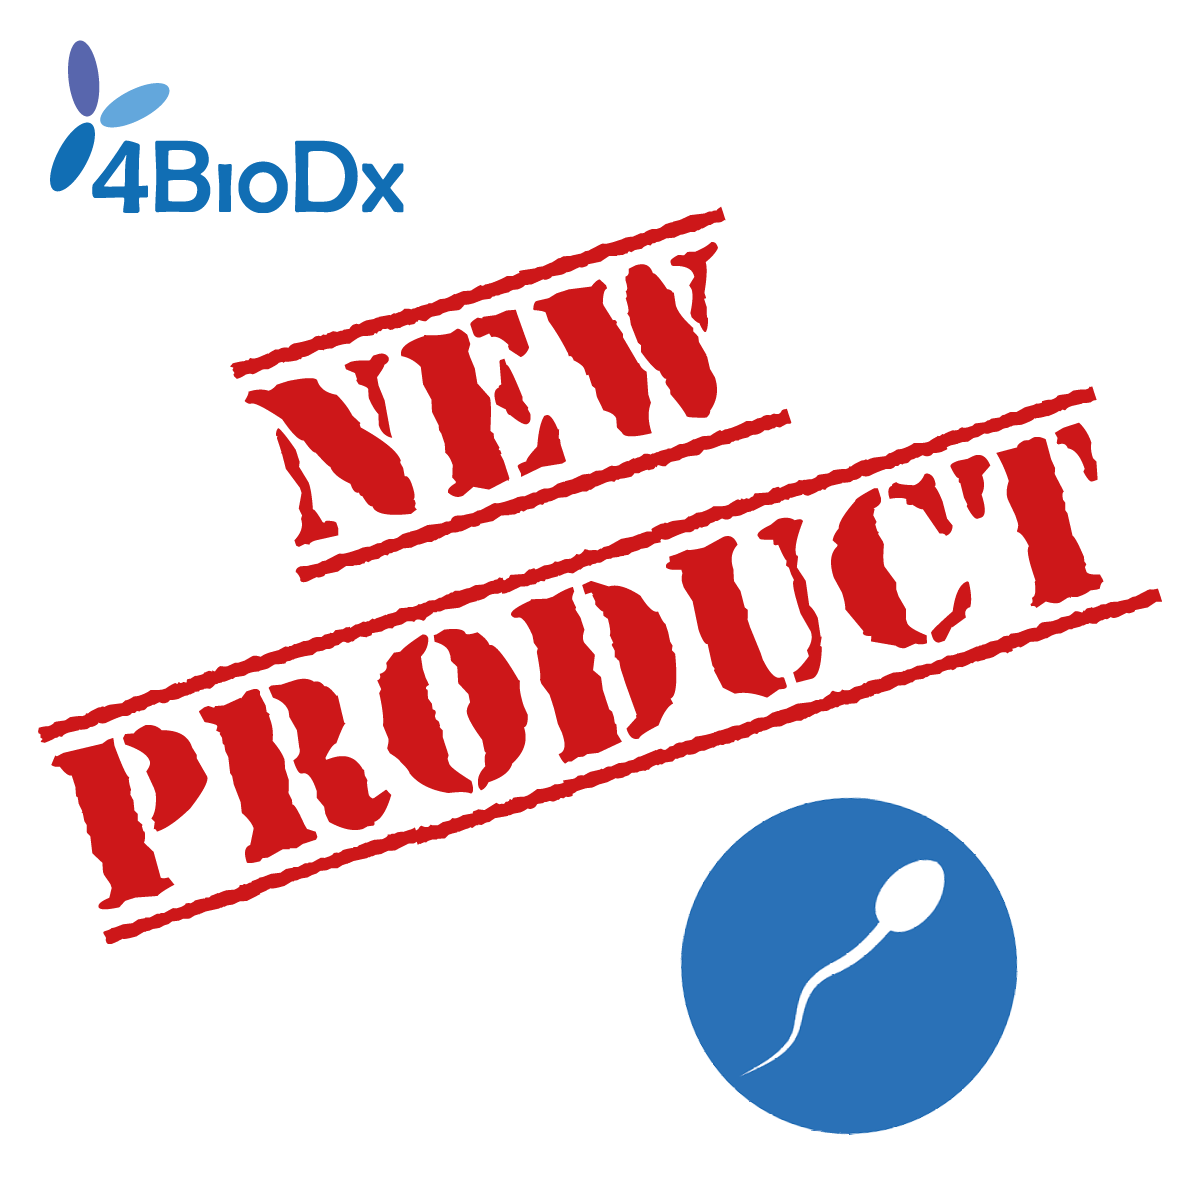 New product: The 1st immunoassay to assess spermatozoa quality-image